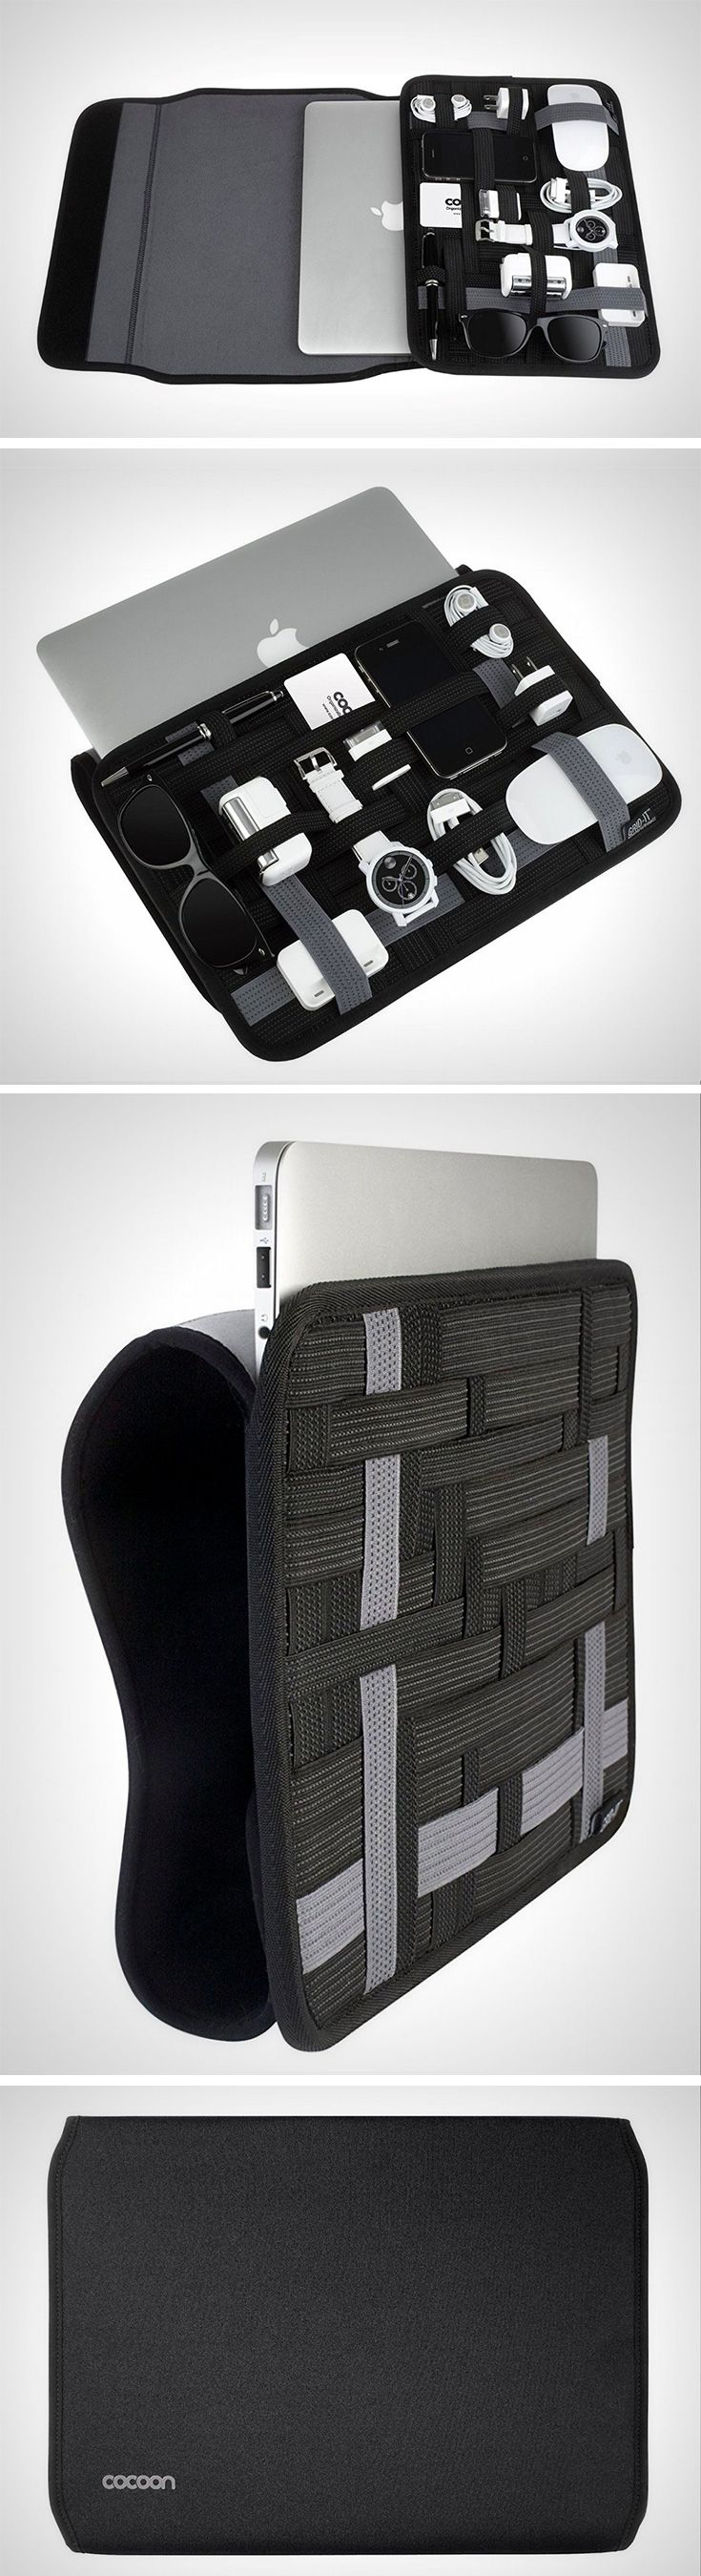 """Unlike any other laptop sleeve, the Cocoon's sleeve comes with an elastic band mesh that can hold any and everything. No more carrying pen-drives in pockets, or having """"dedicated spaces"""" for only select items. The mesh on the Cocoon Grid-It laptop sleeve holds all your gear in a beautiful organized grid that looks like a spider-web from OCD heaven! Buy Now."""